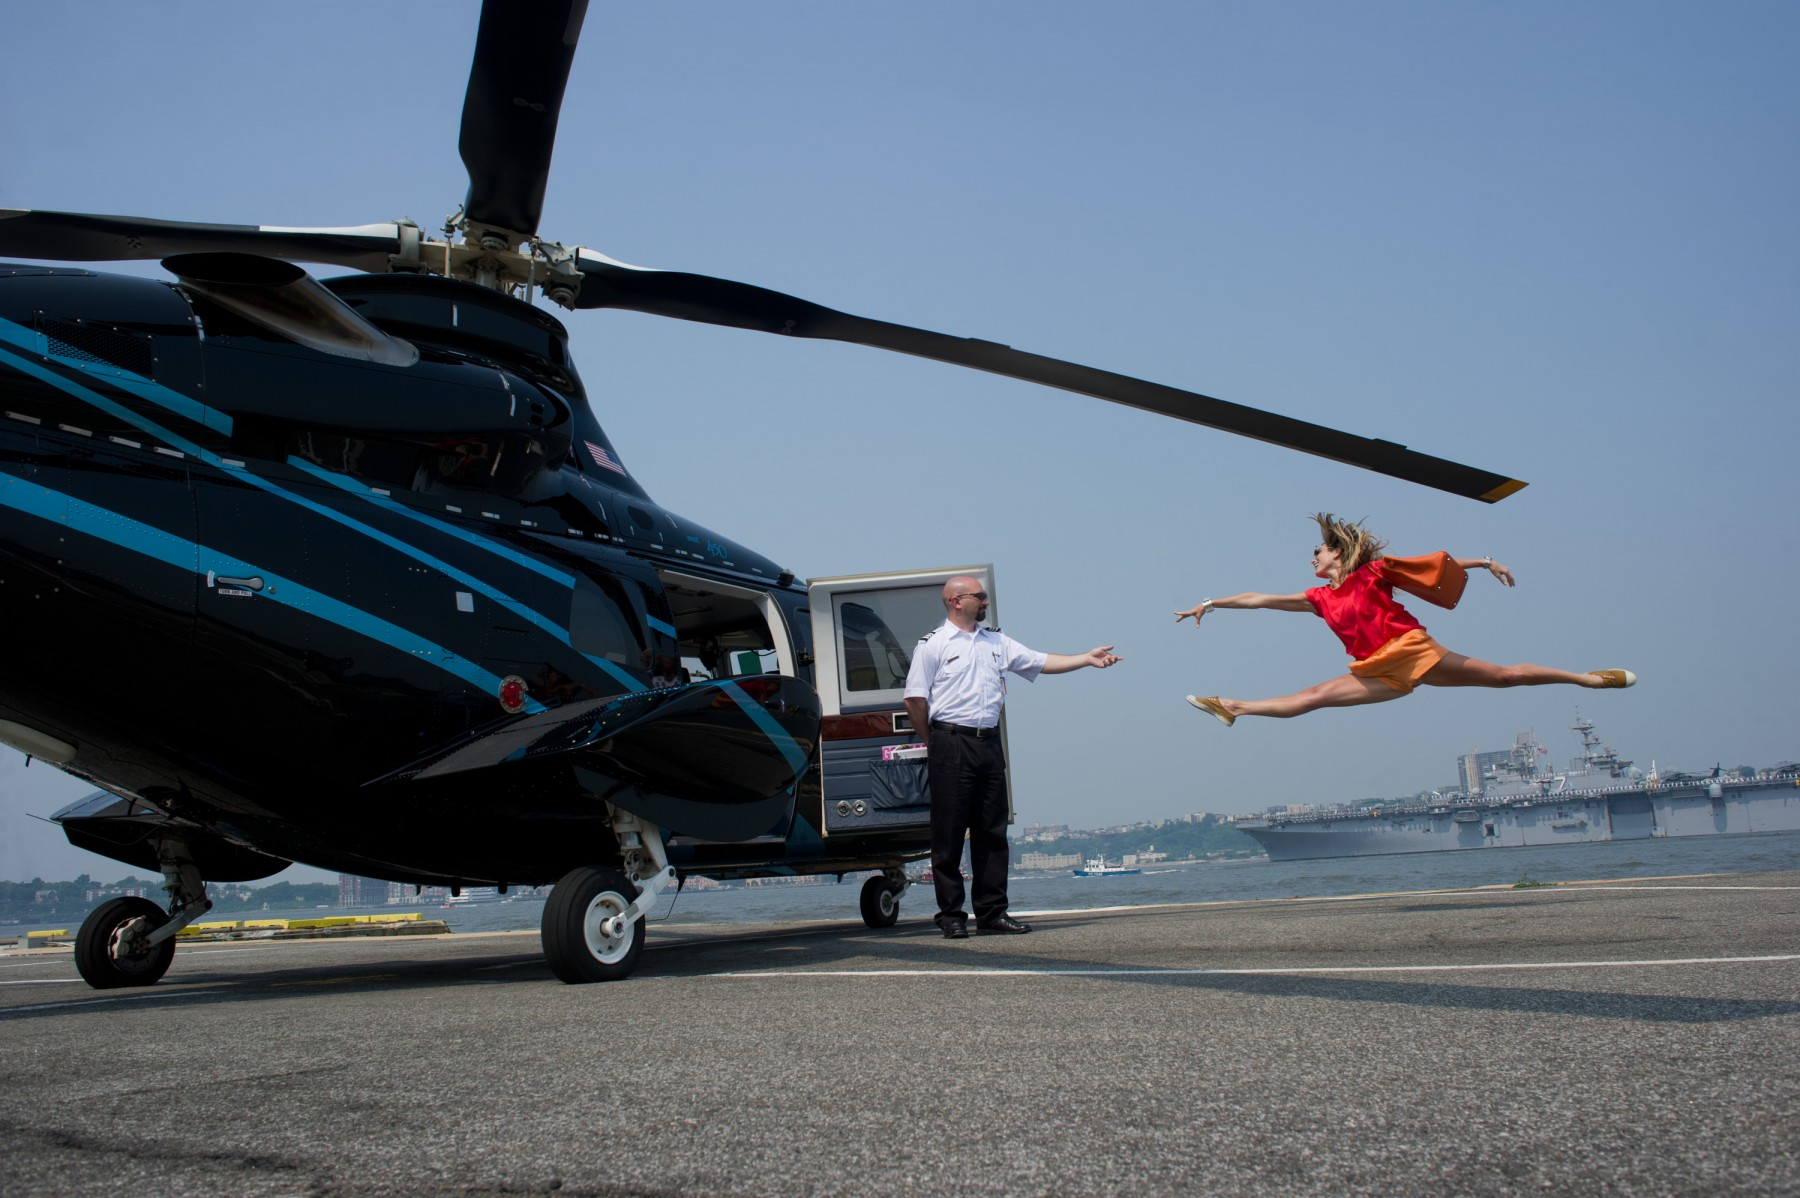 6-Dancers-Among-Us-VIP-Heliport-Marcella-Guarino